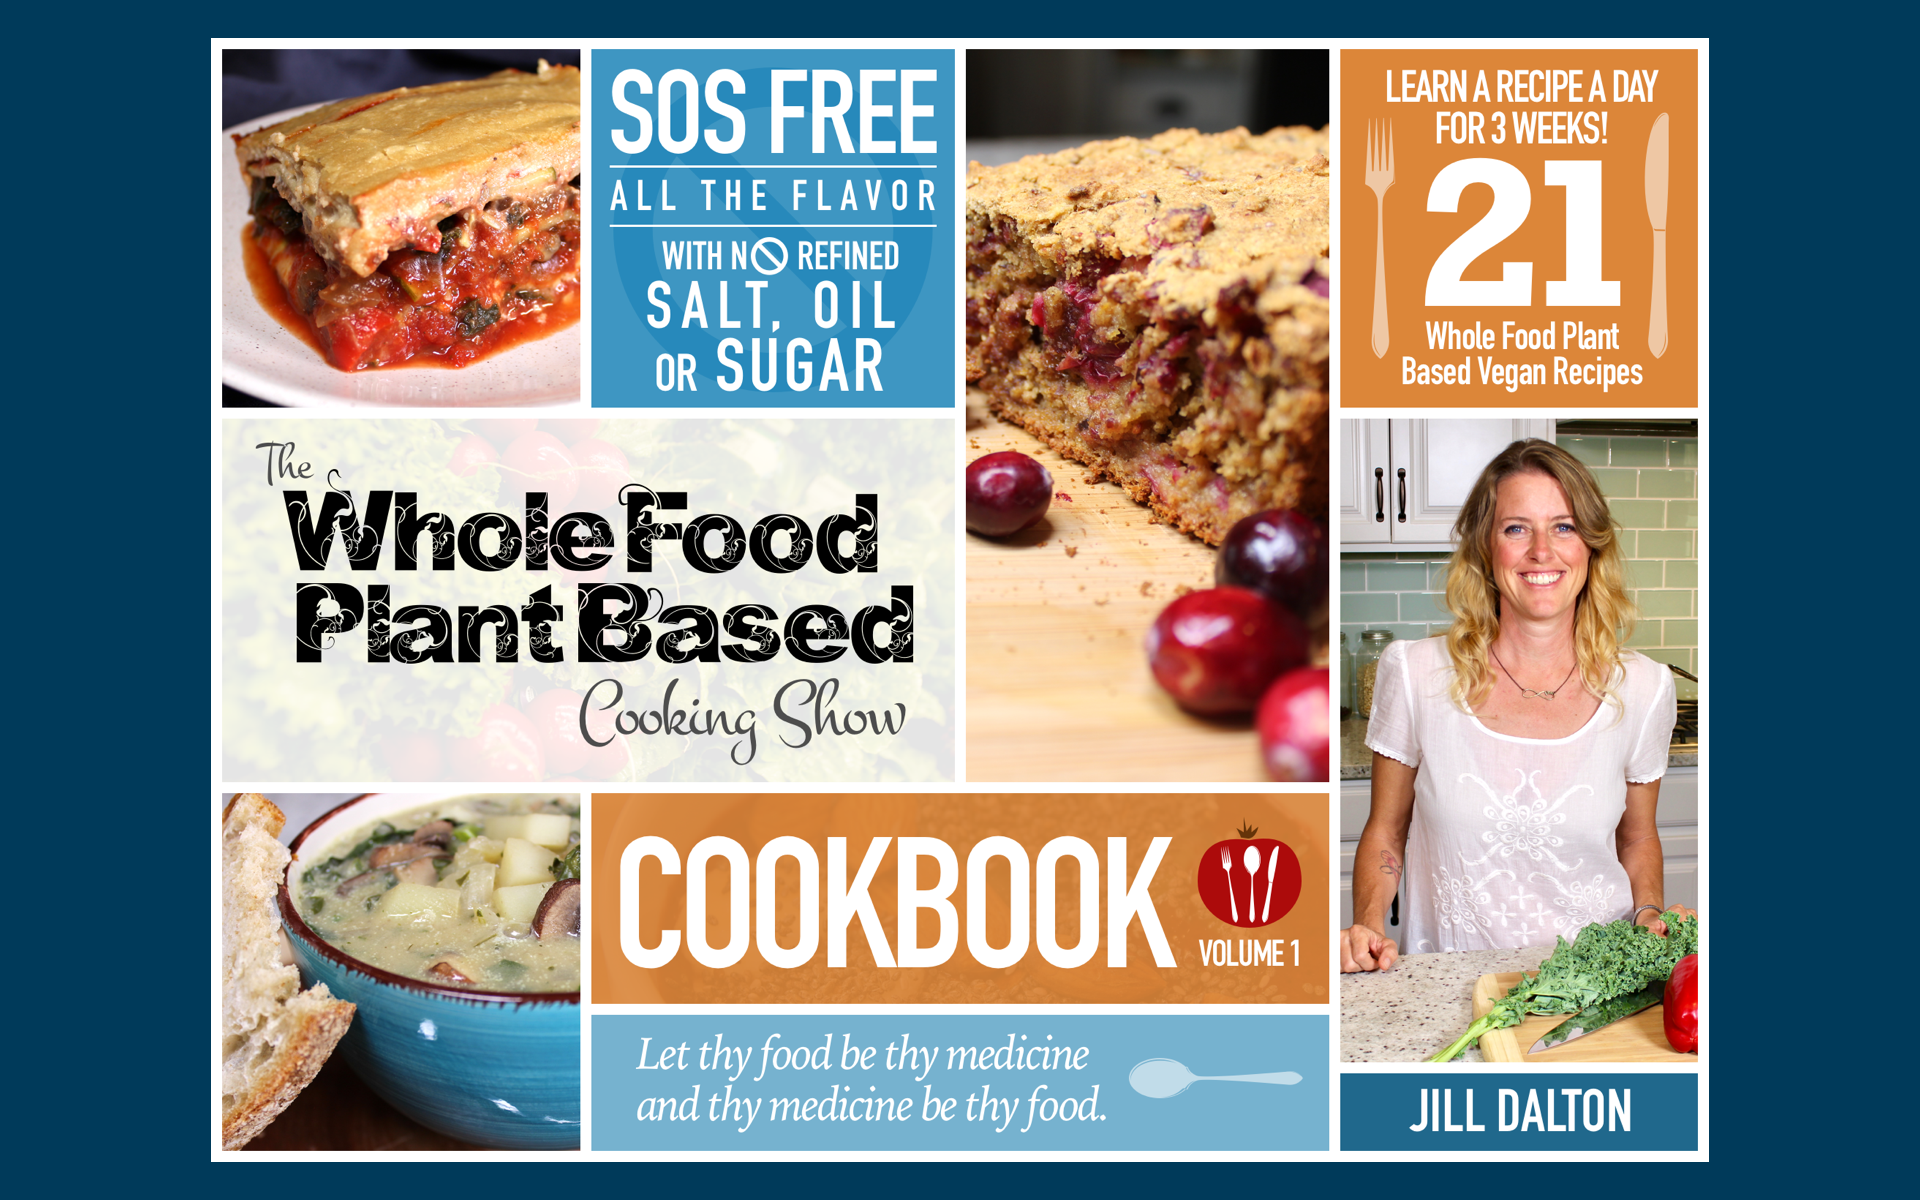 The Whole Food Plant Based Cooking Show Cookbook Volume 1